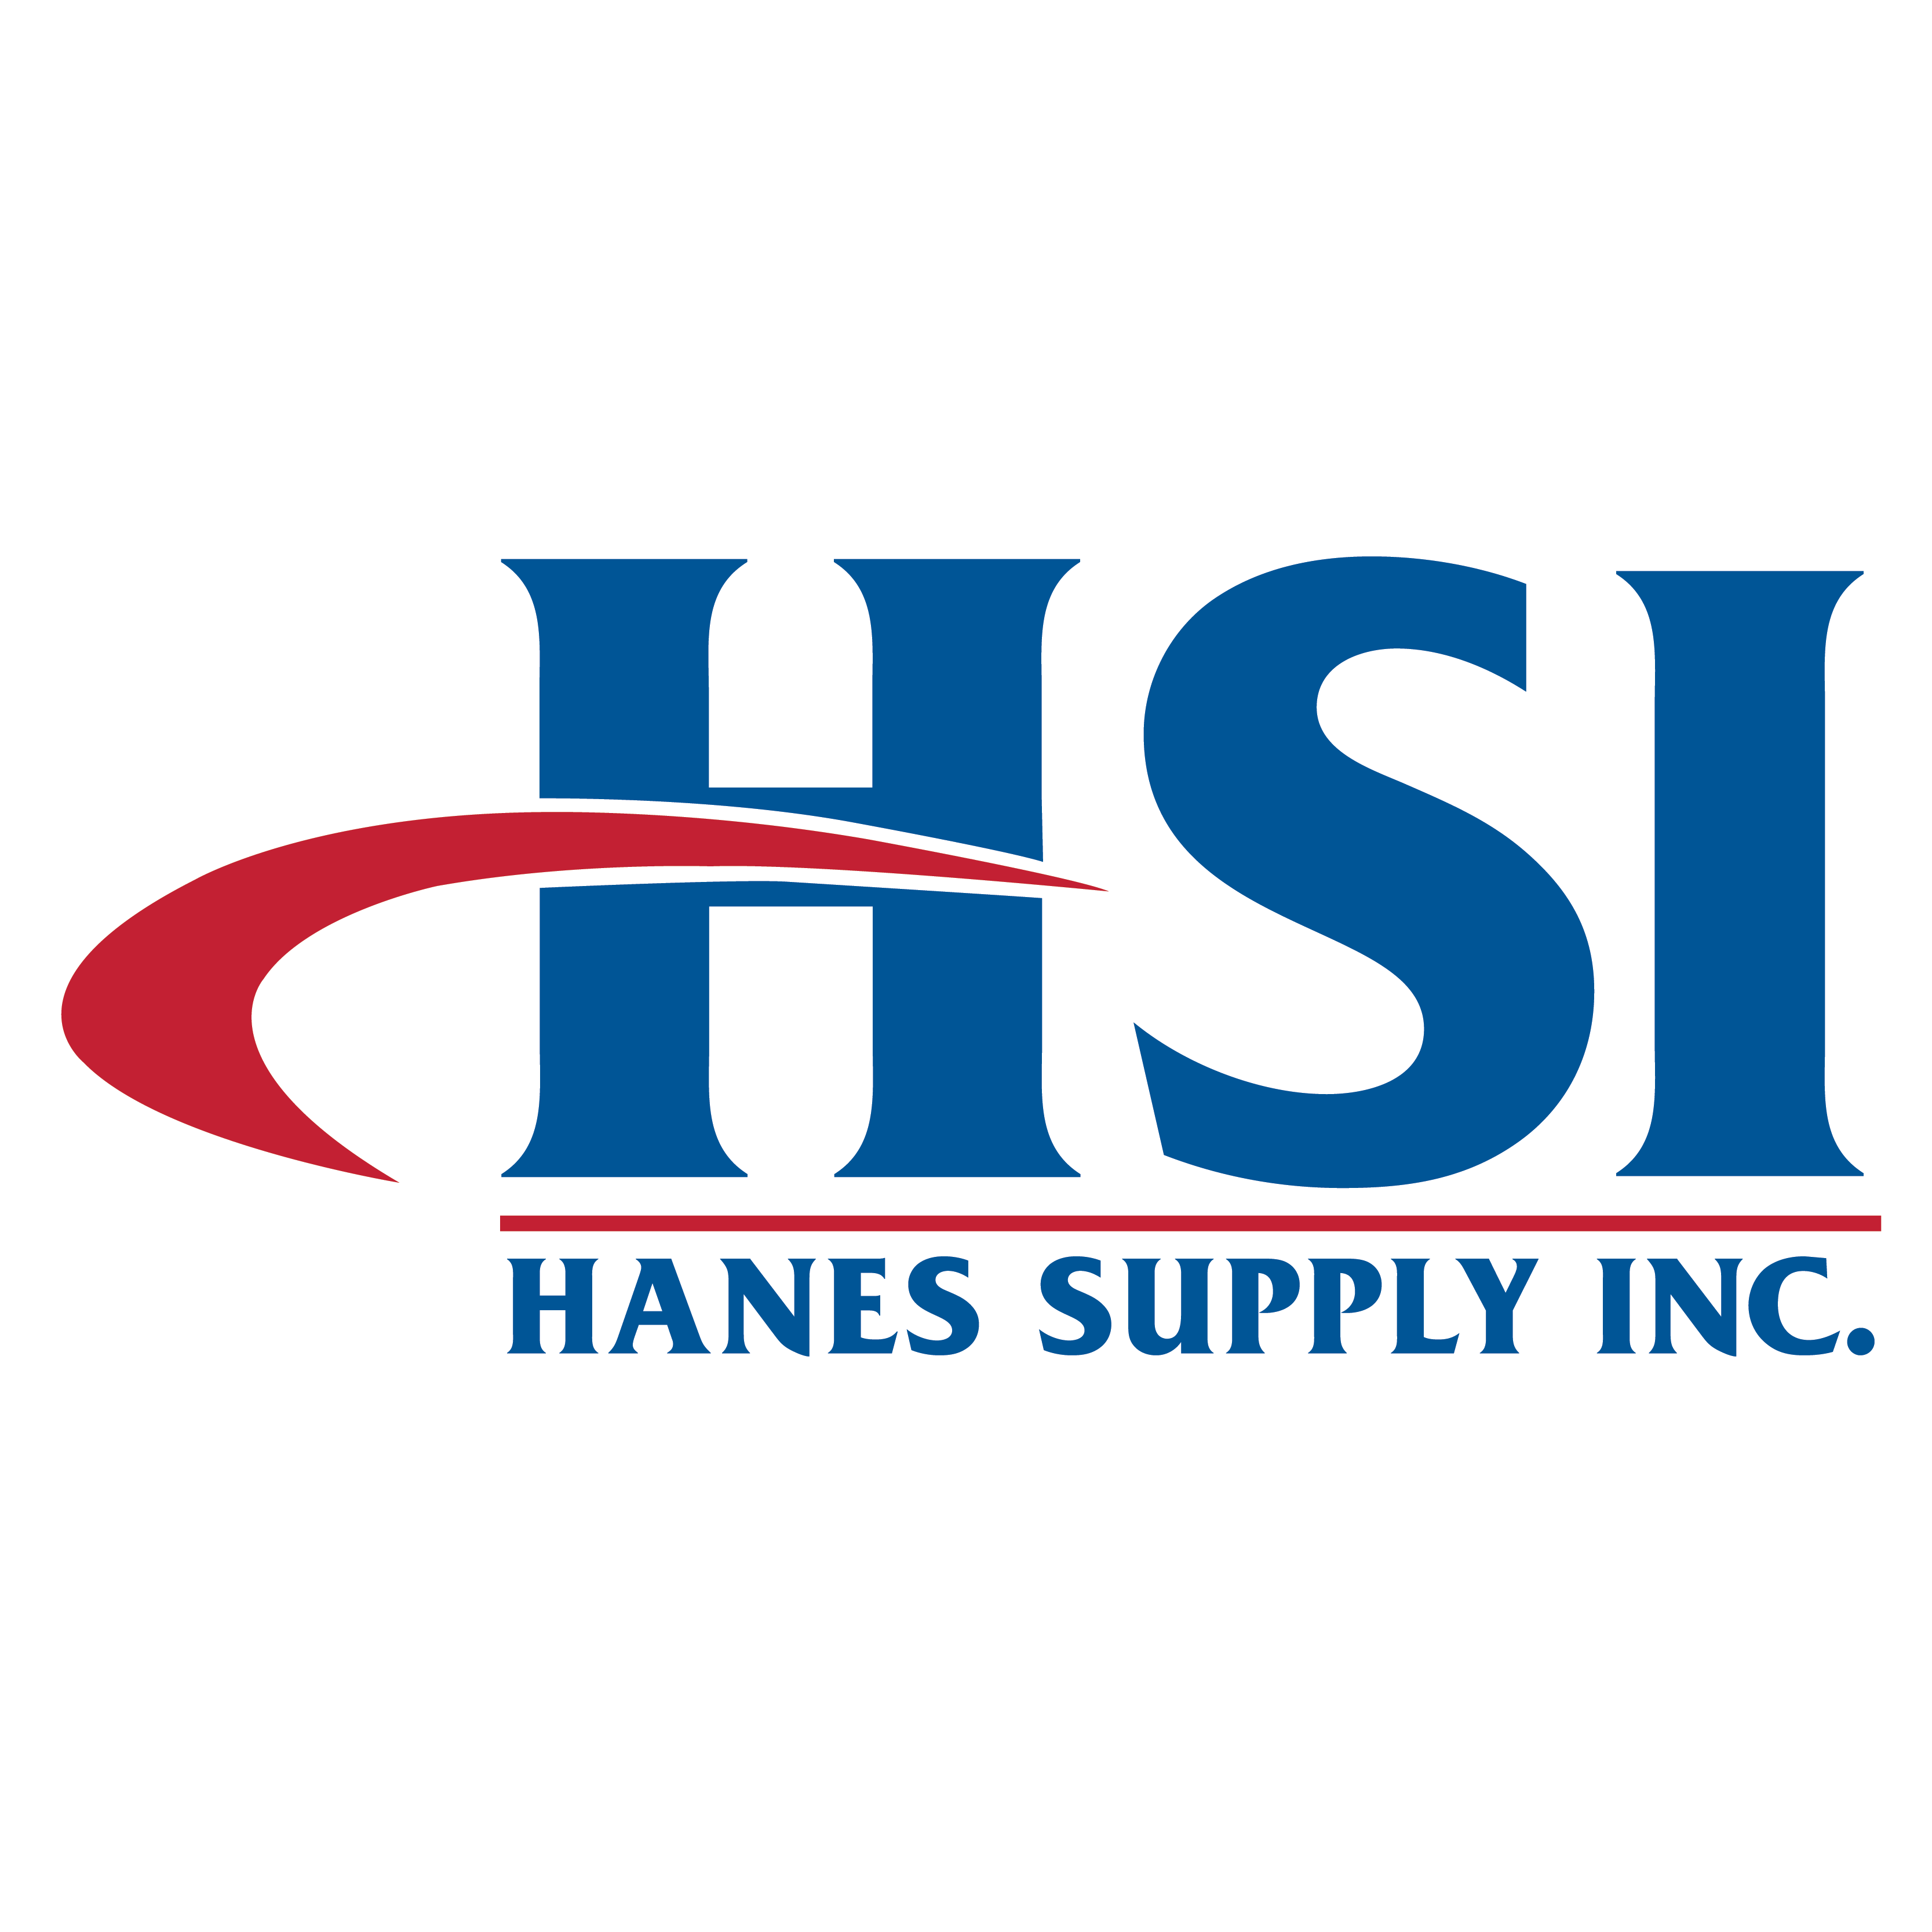 HSI Nylon Lifting Sling, Three Leg Bridle With Eye Loop Ends, Hanes Supply Inc.